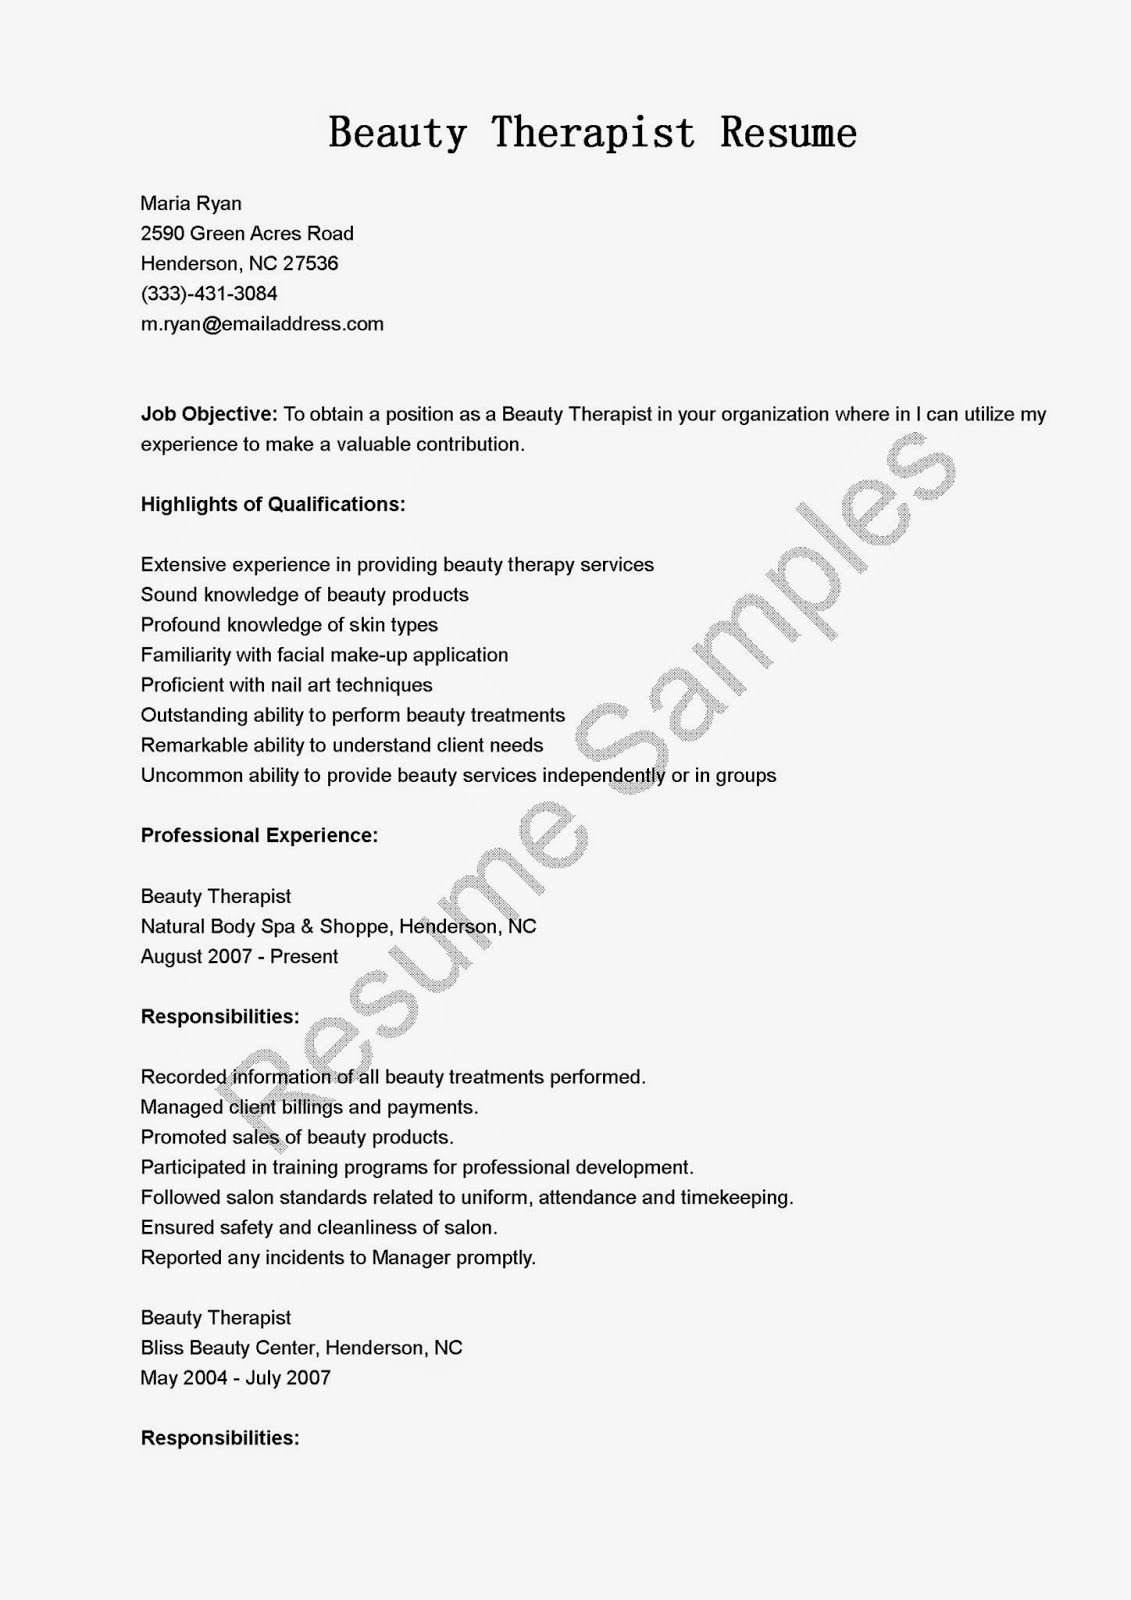 art therapist resume. 100 art therapist resume cosmetology, Presentation templates